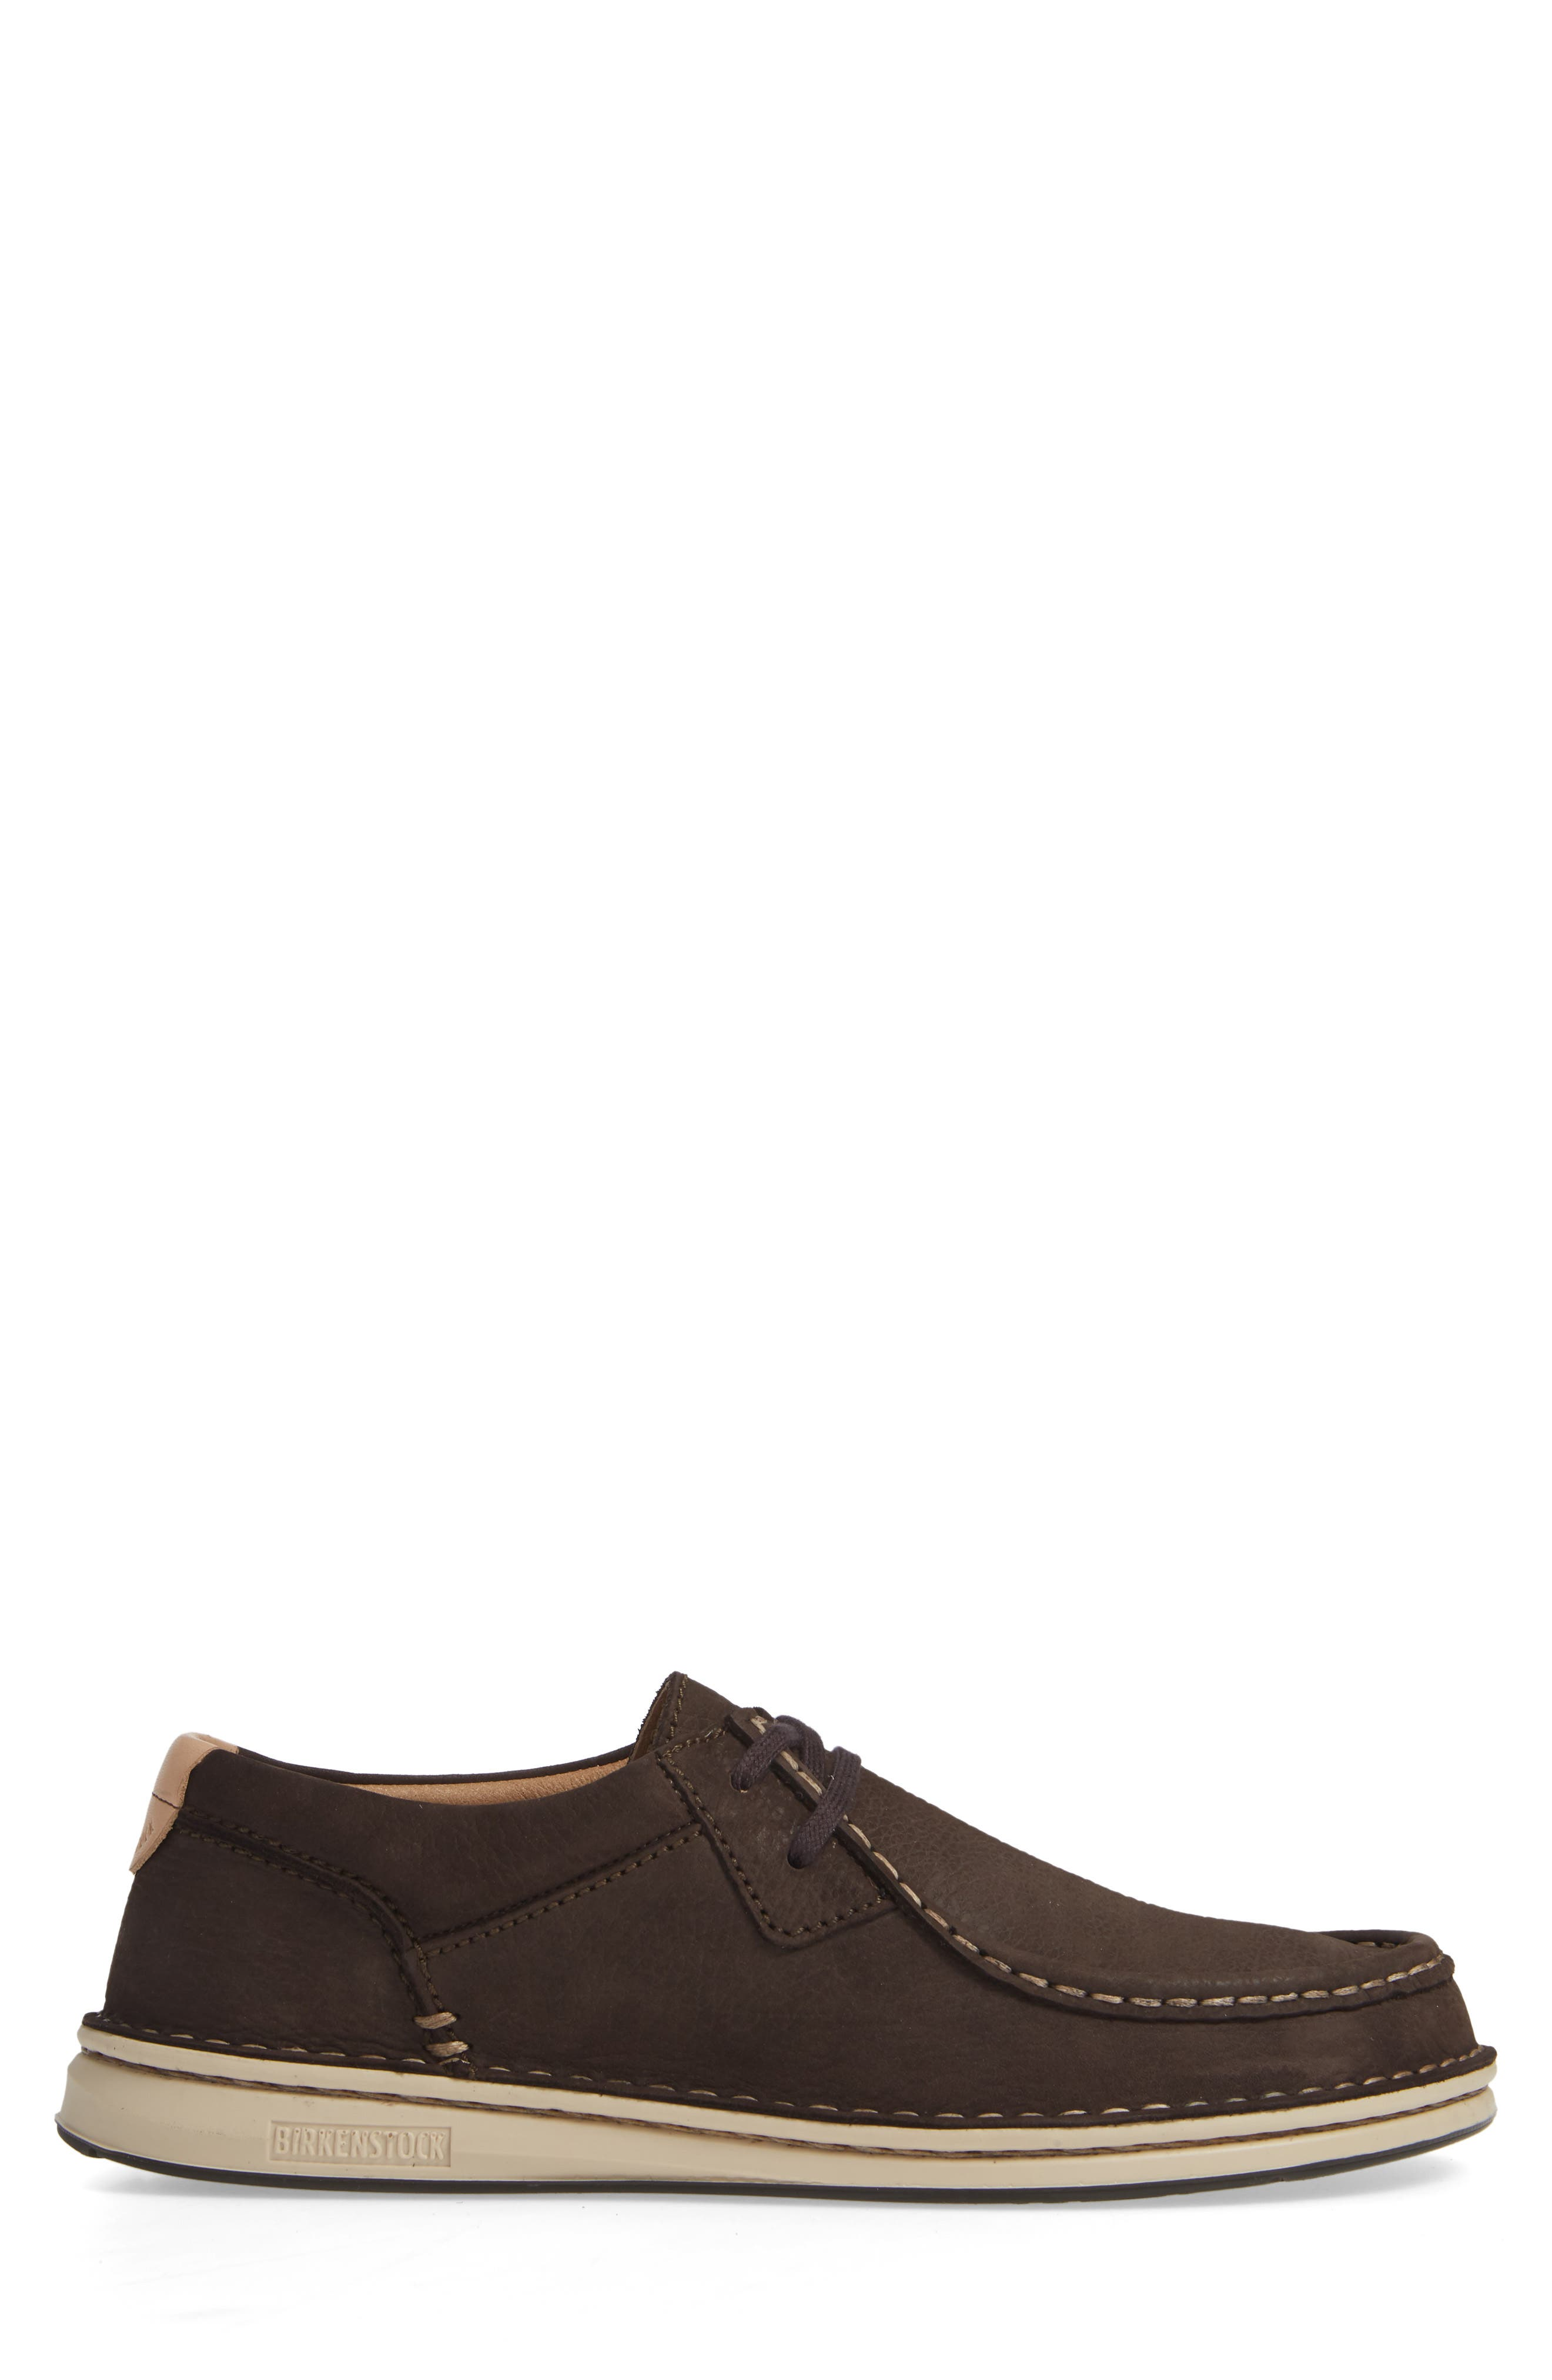 'Pasadena' Lace-Up Moccasin,                             Alternate thumbnail 3, color,                             BROWN